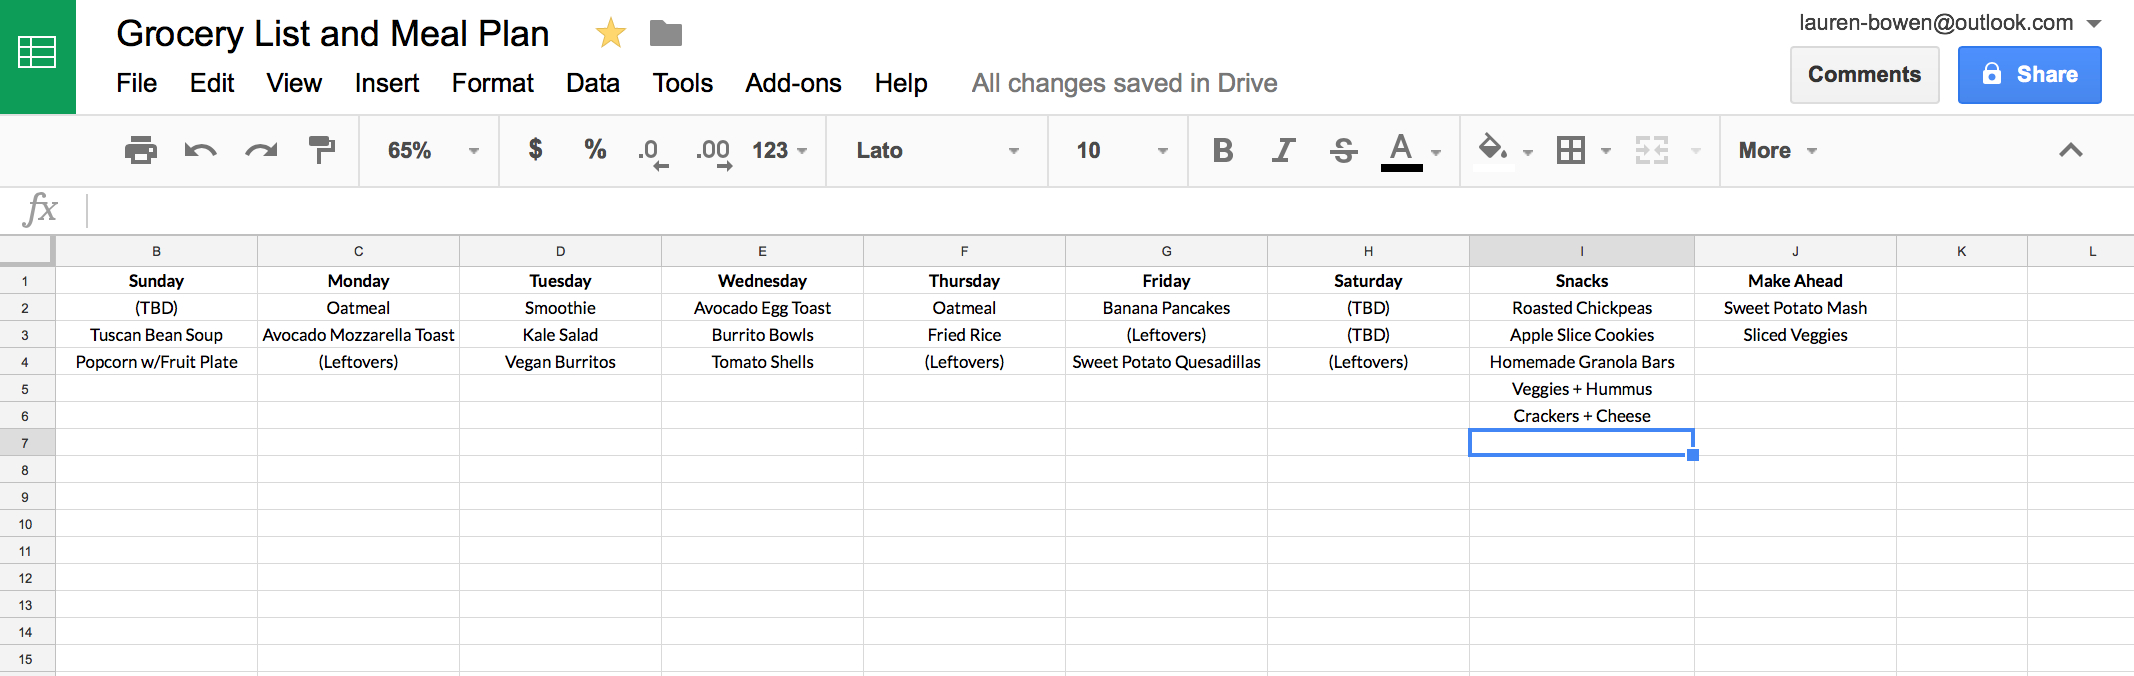 040 Meal Plan Template Download Google Drive Archaicawful